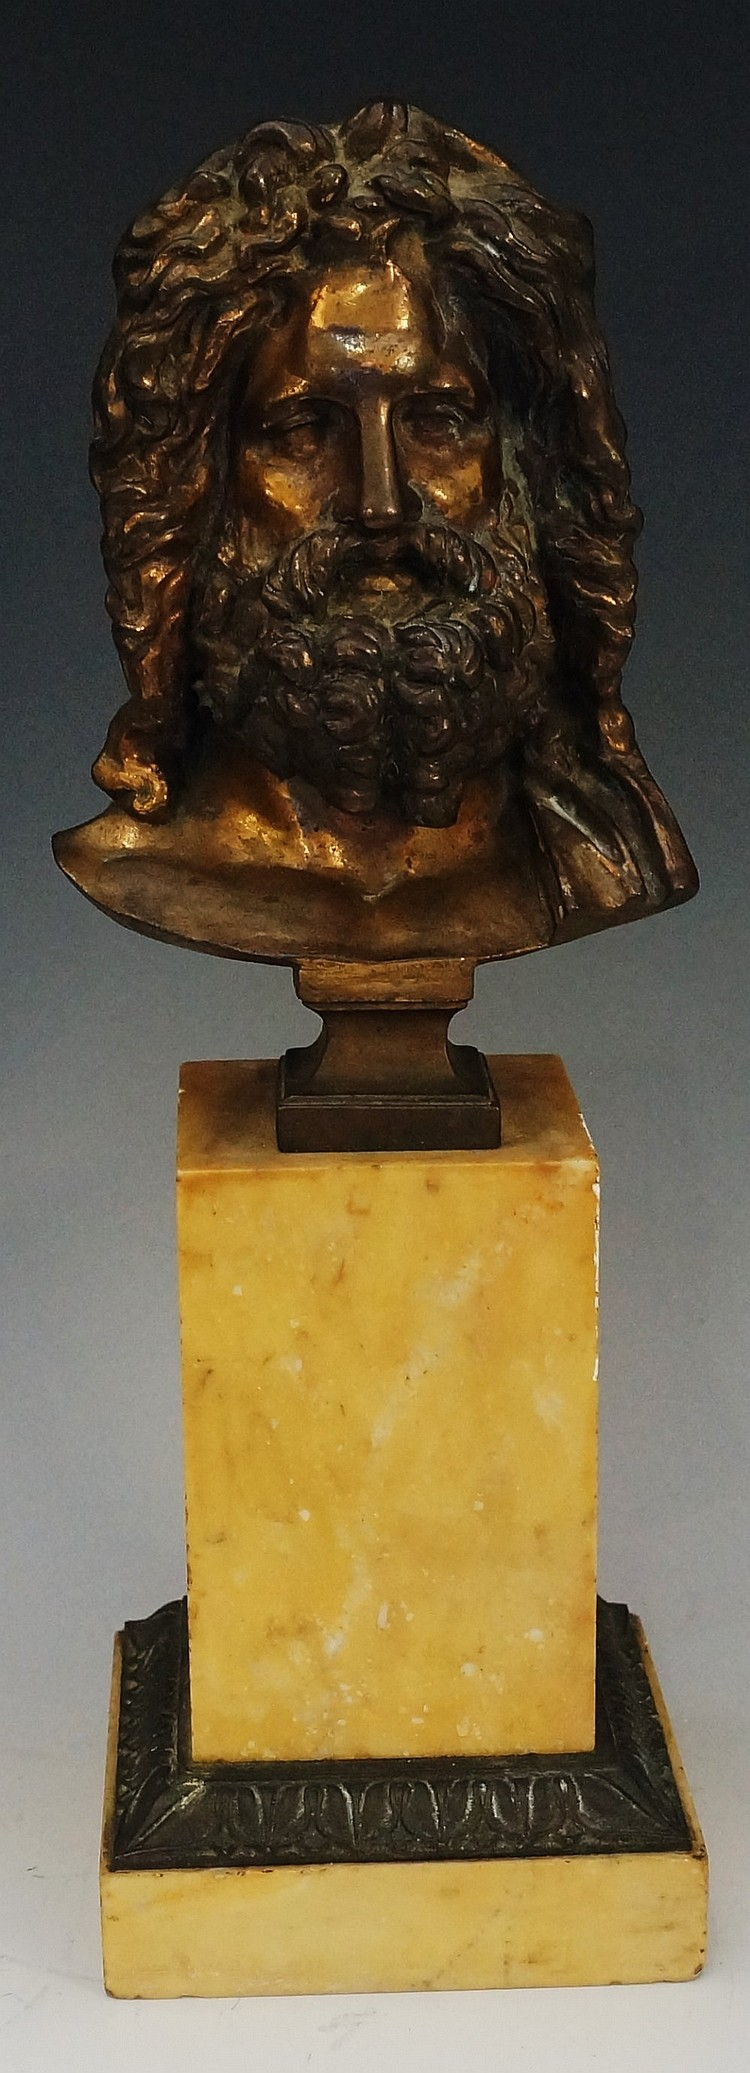 An early 19th Century head and should gilt bronze bust of a bearded man on